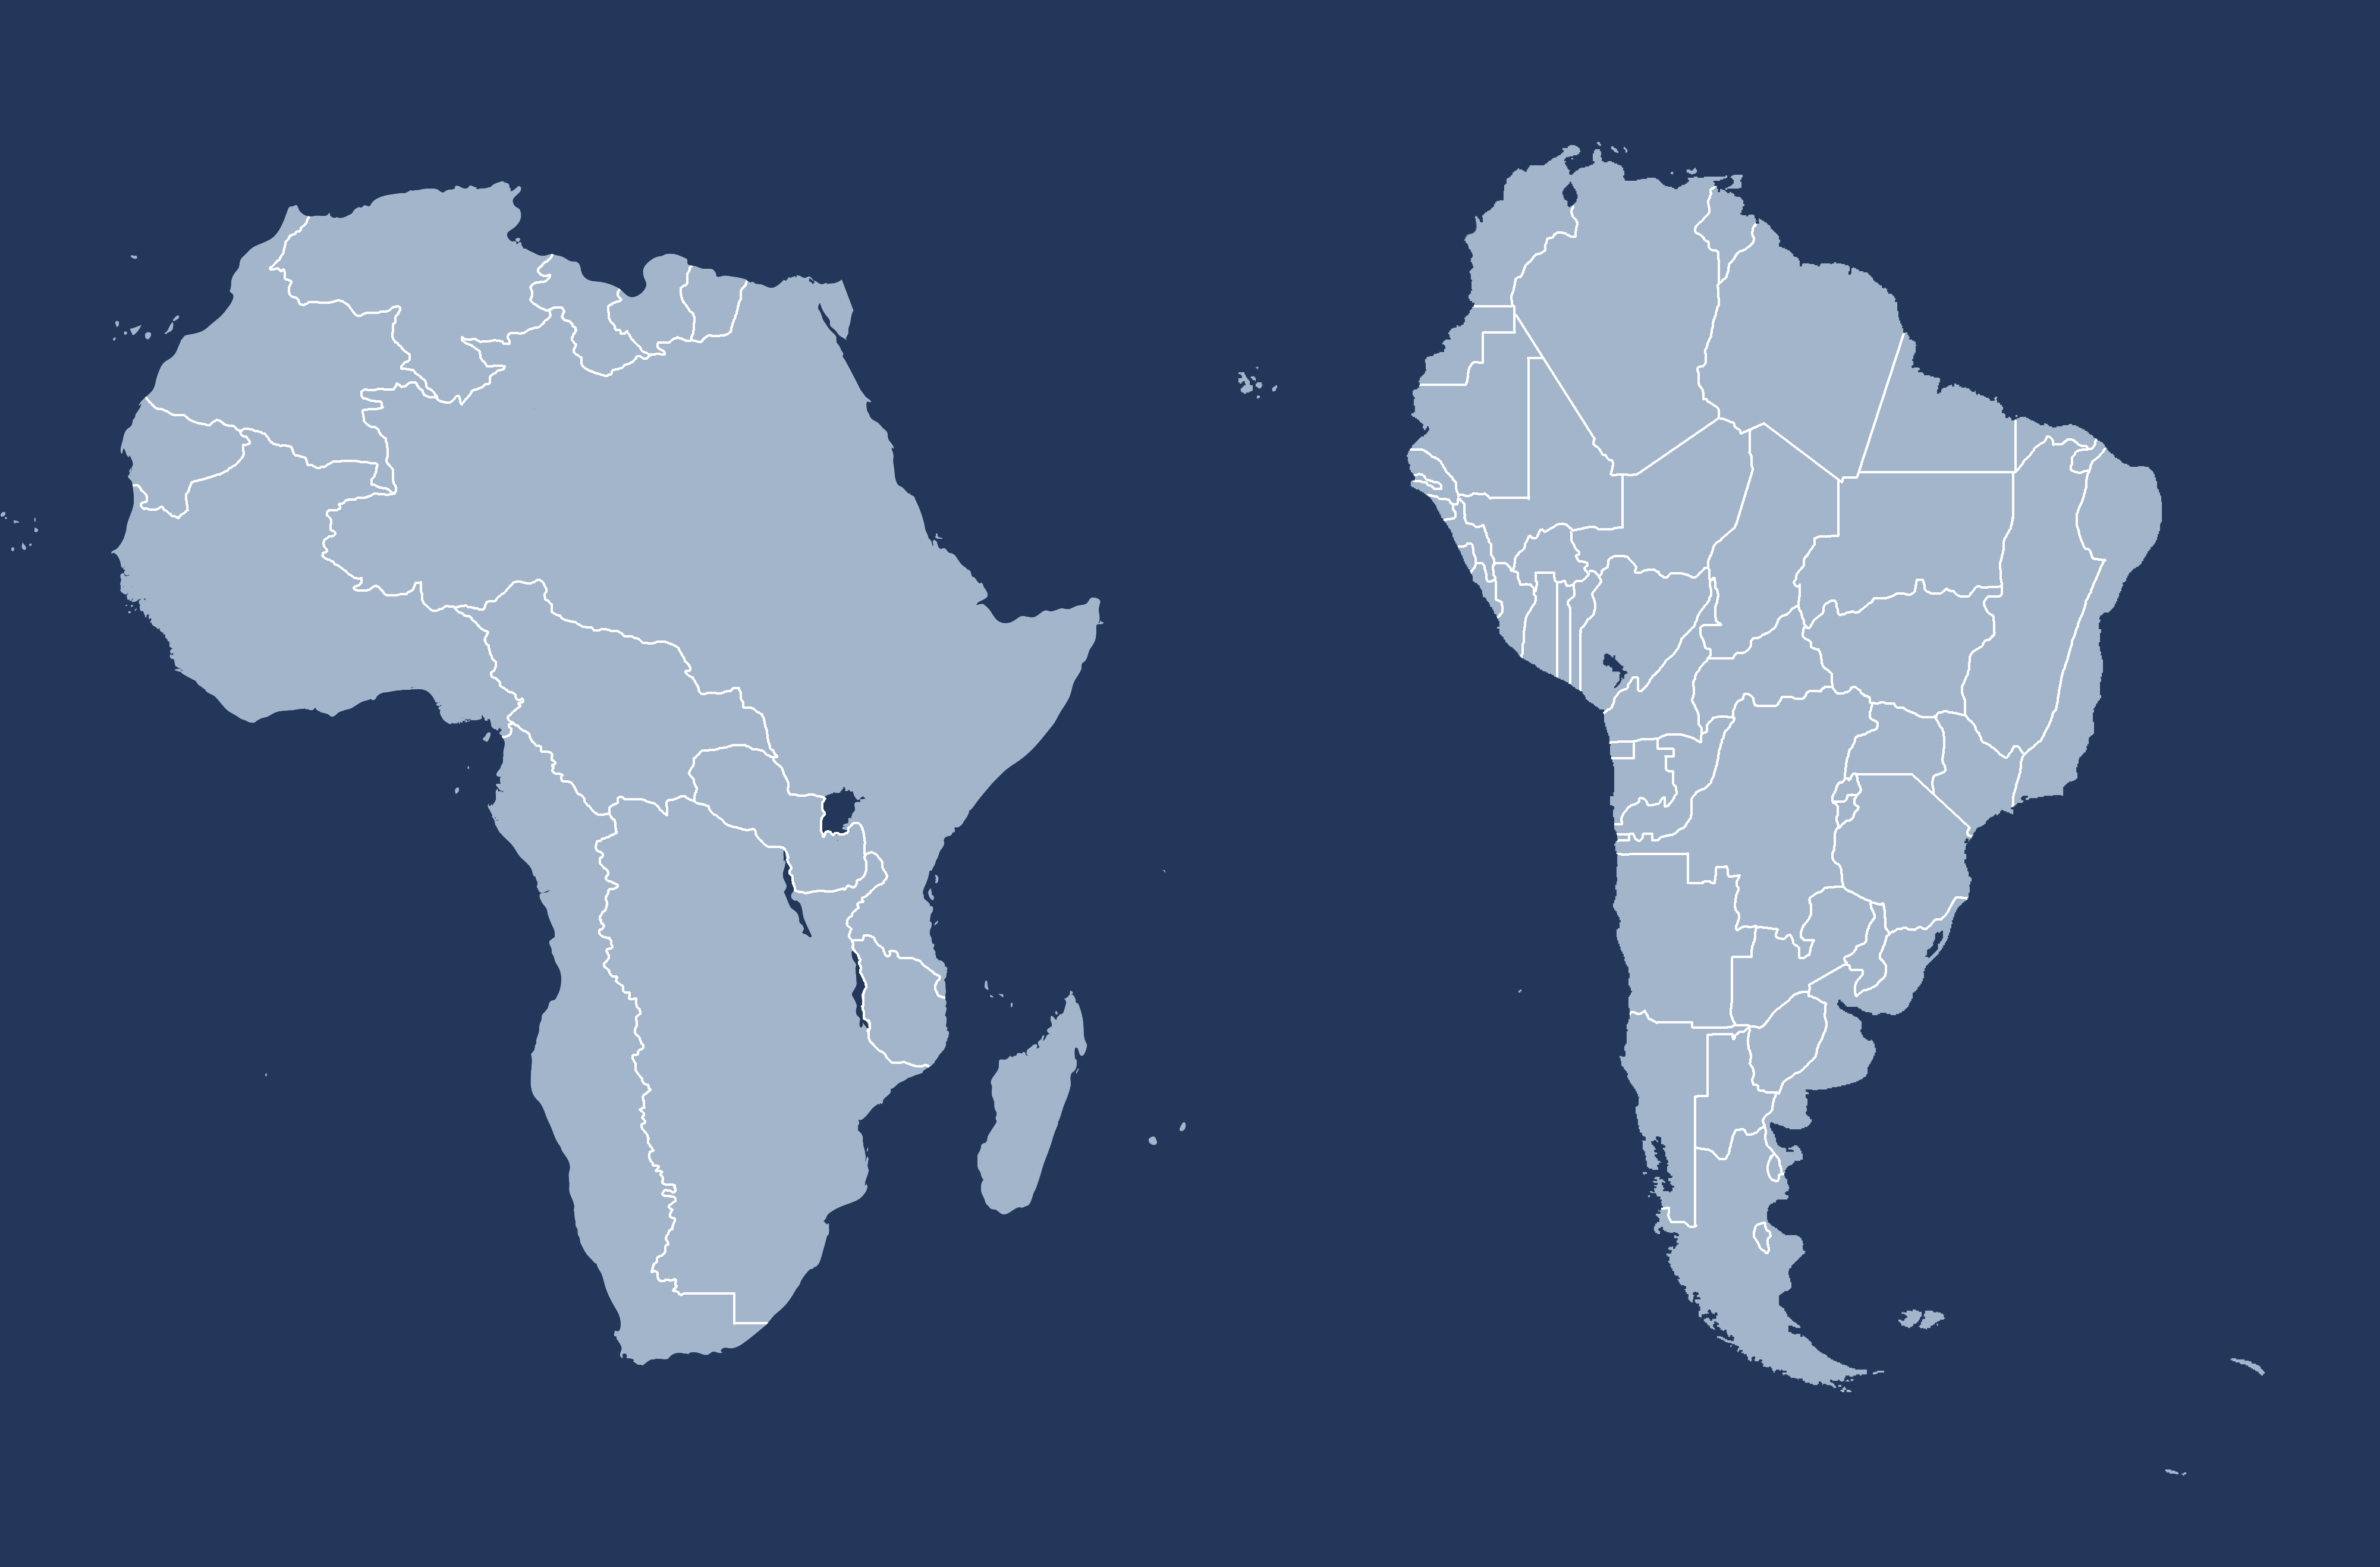 America And Africa Map Separated at birth : South America and Africa with switched